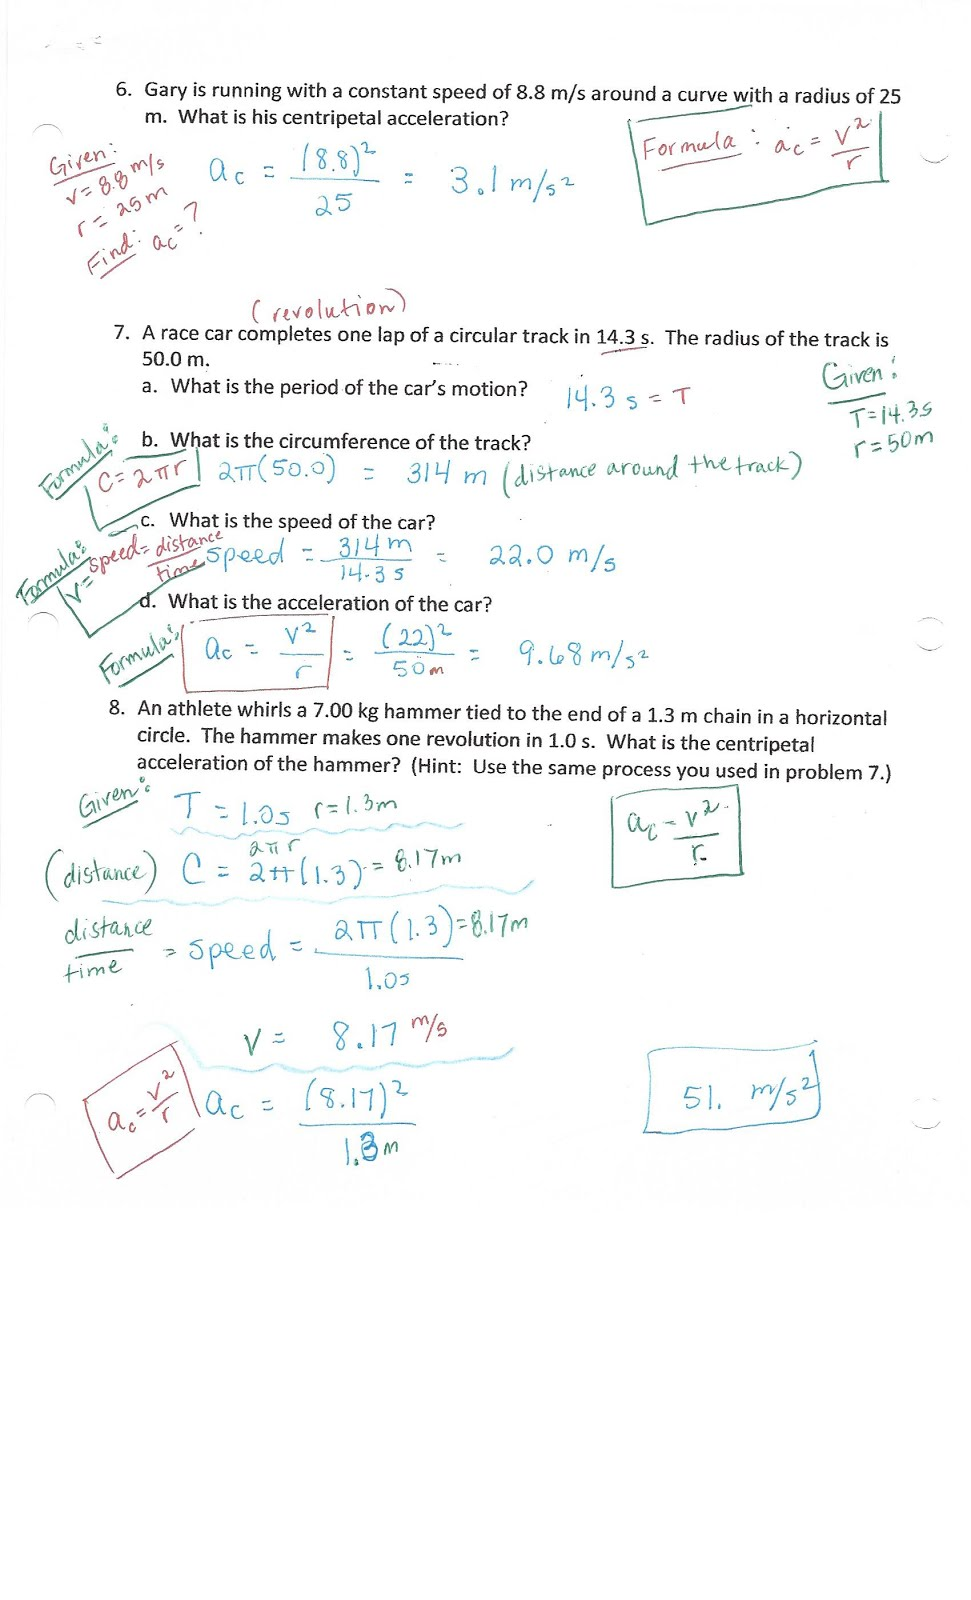 PHYSICS WITH COACH T Centripetal Acceleration Universal – Acceleration Worksheets